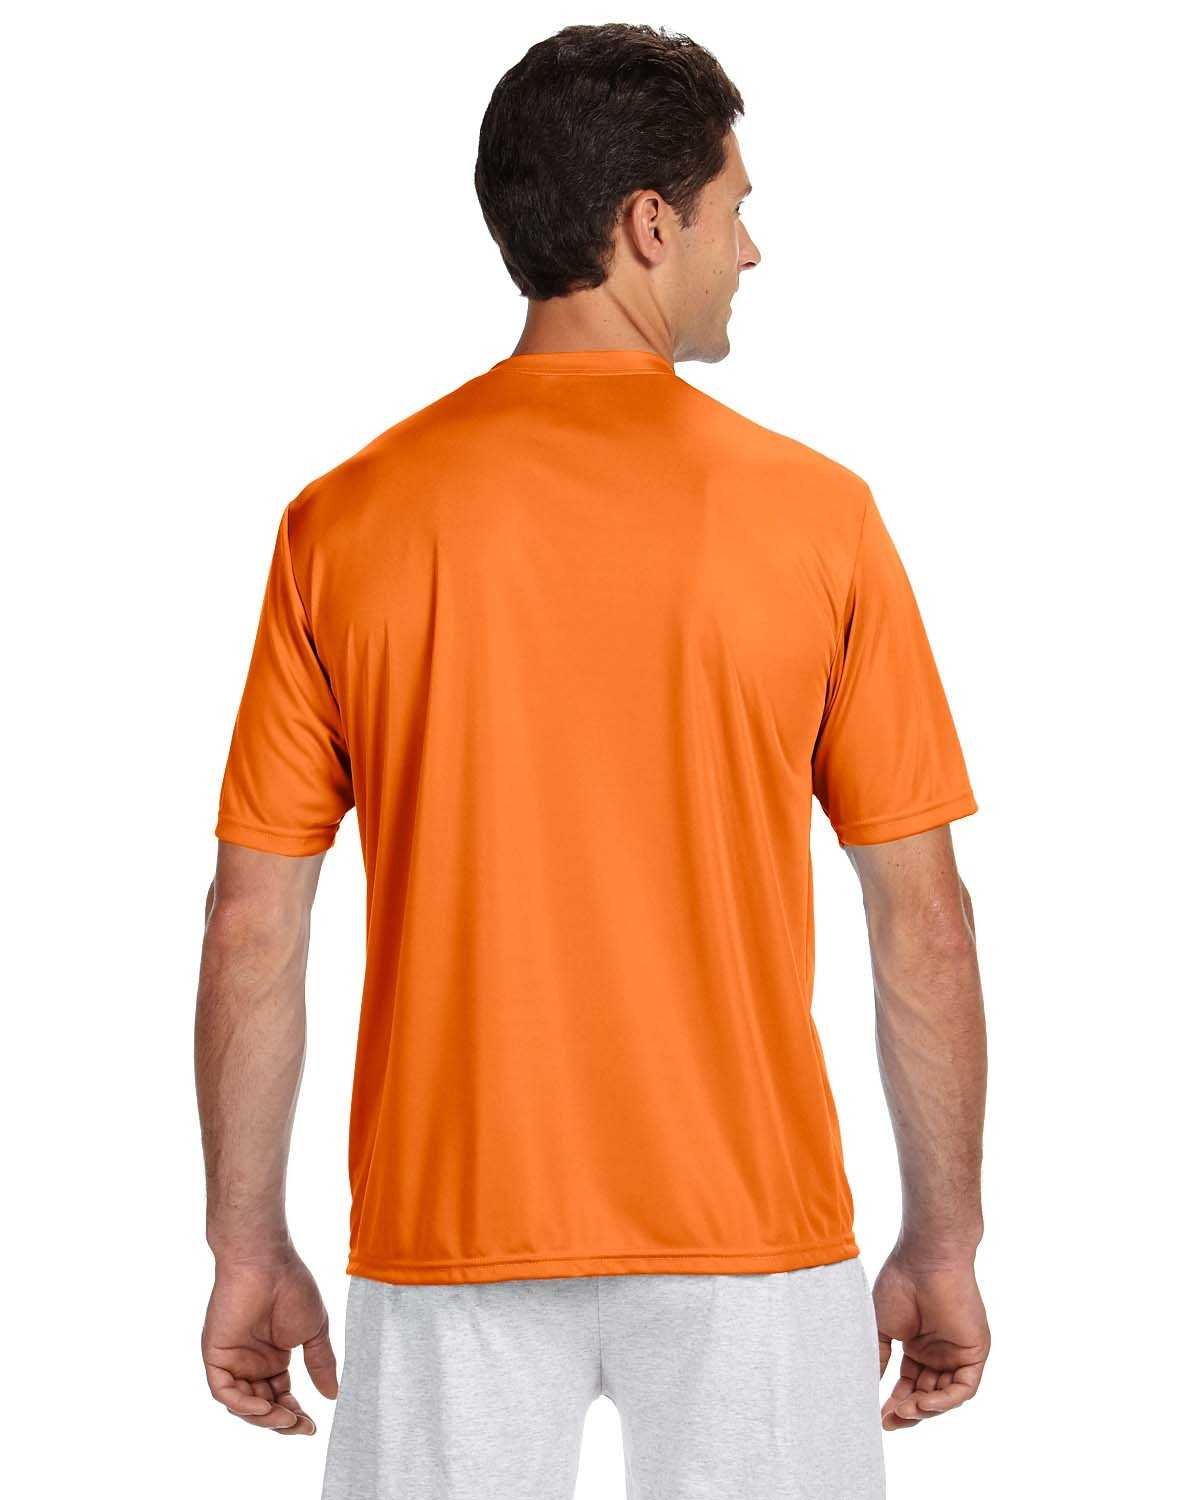 N3142 A4 Apparel SAFETY ORANGE